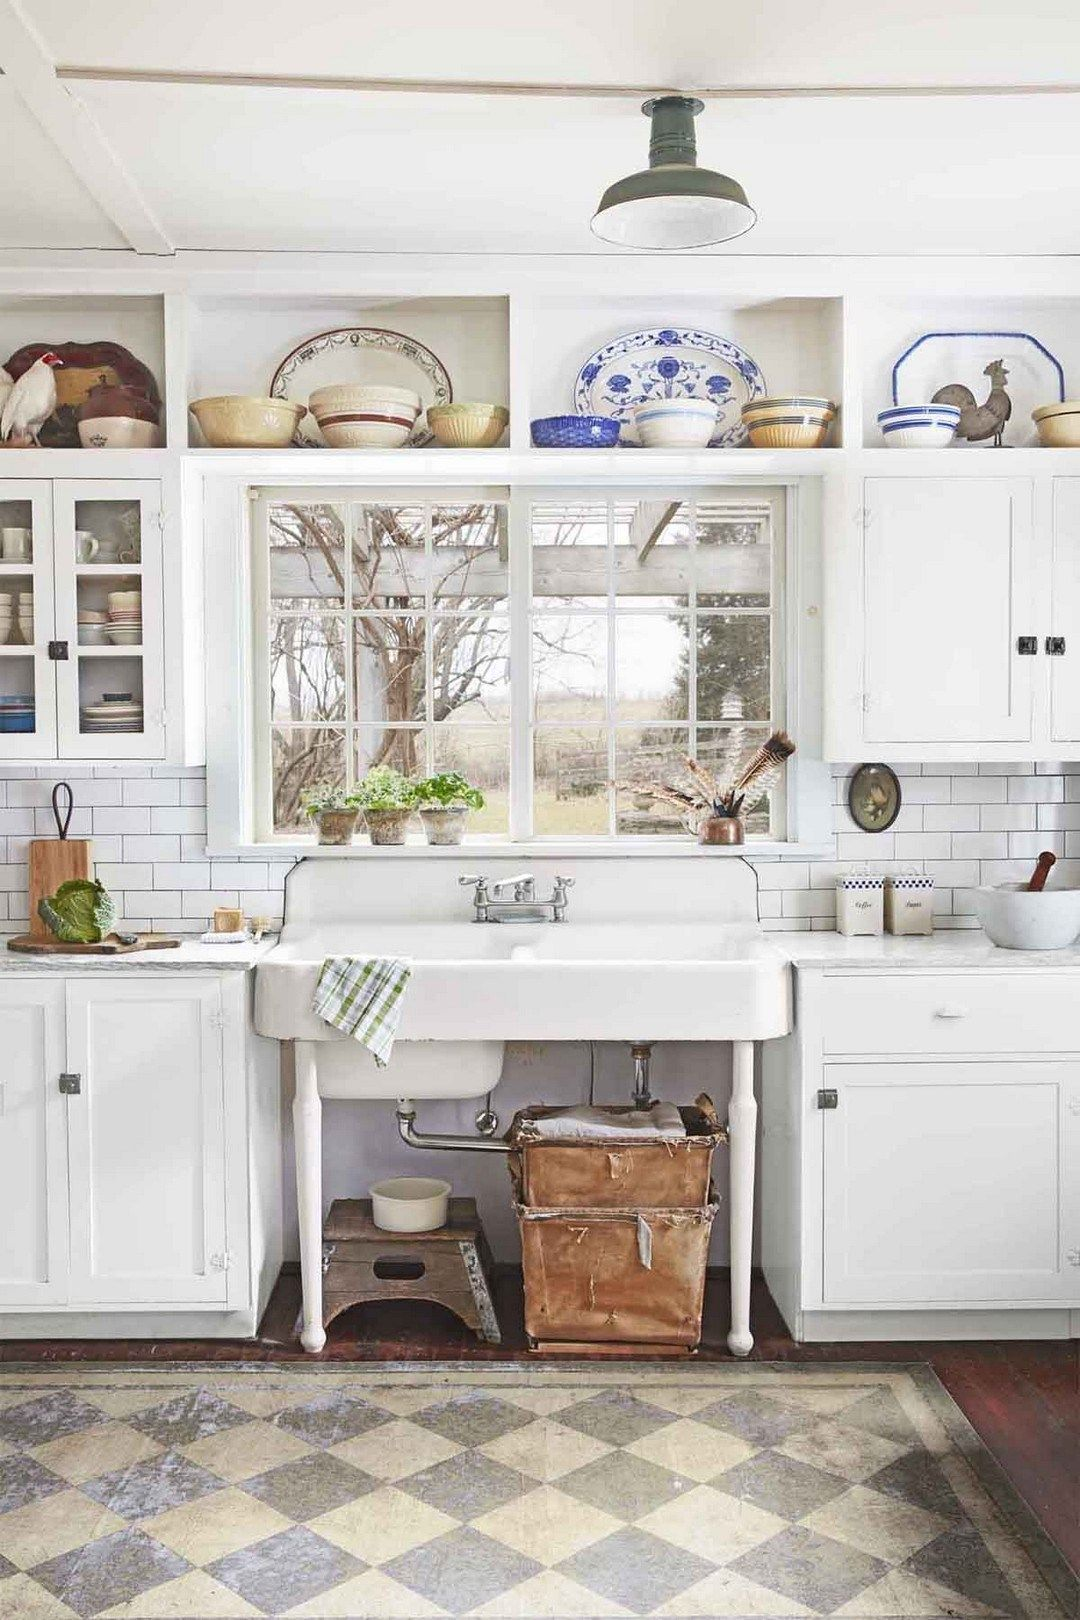 imagine how amazing it would be if you had farmhouse kitchen ideas